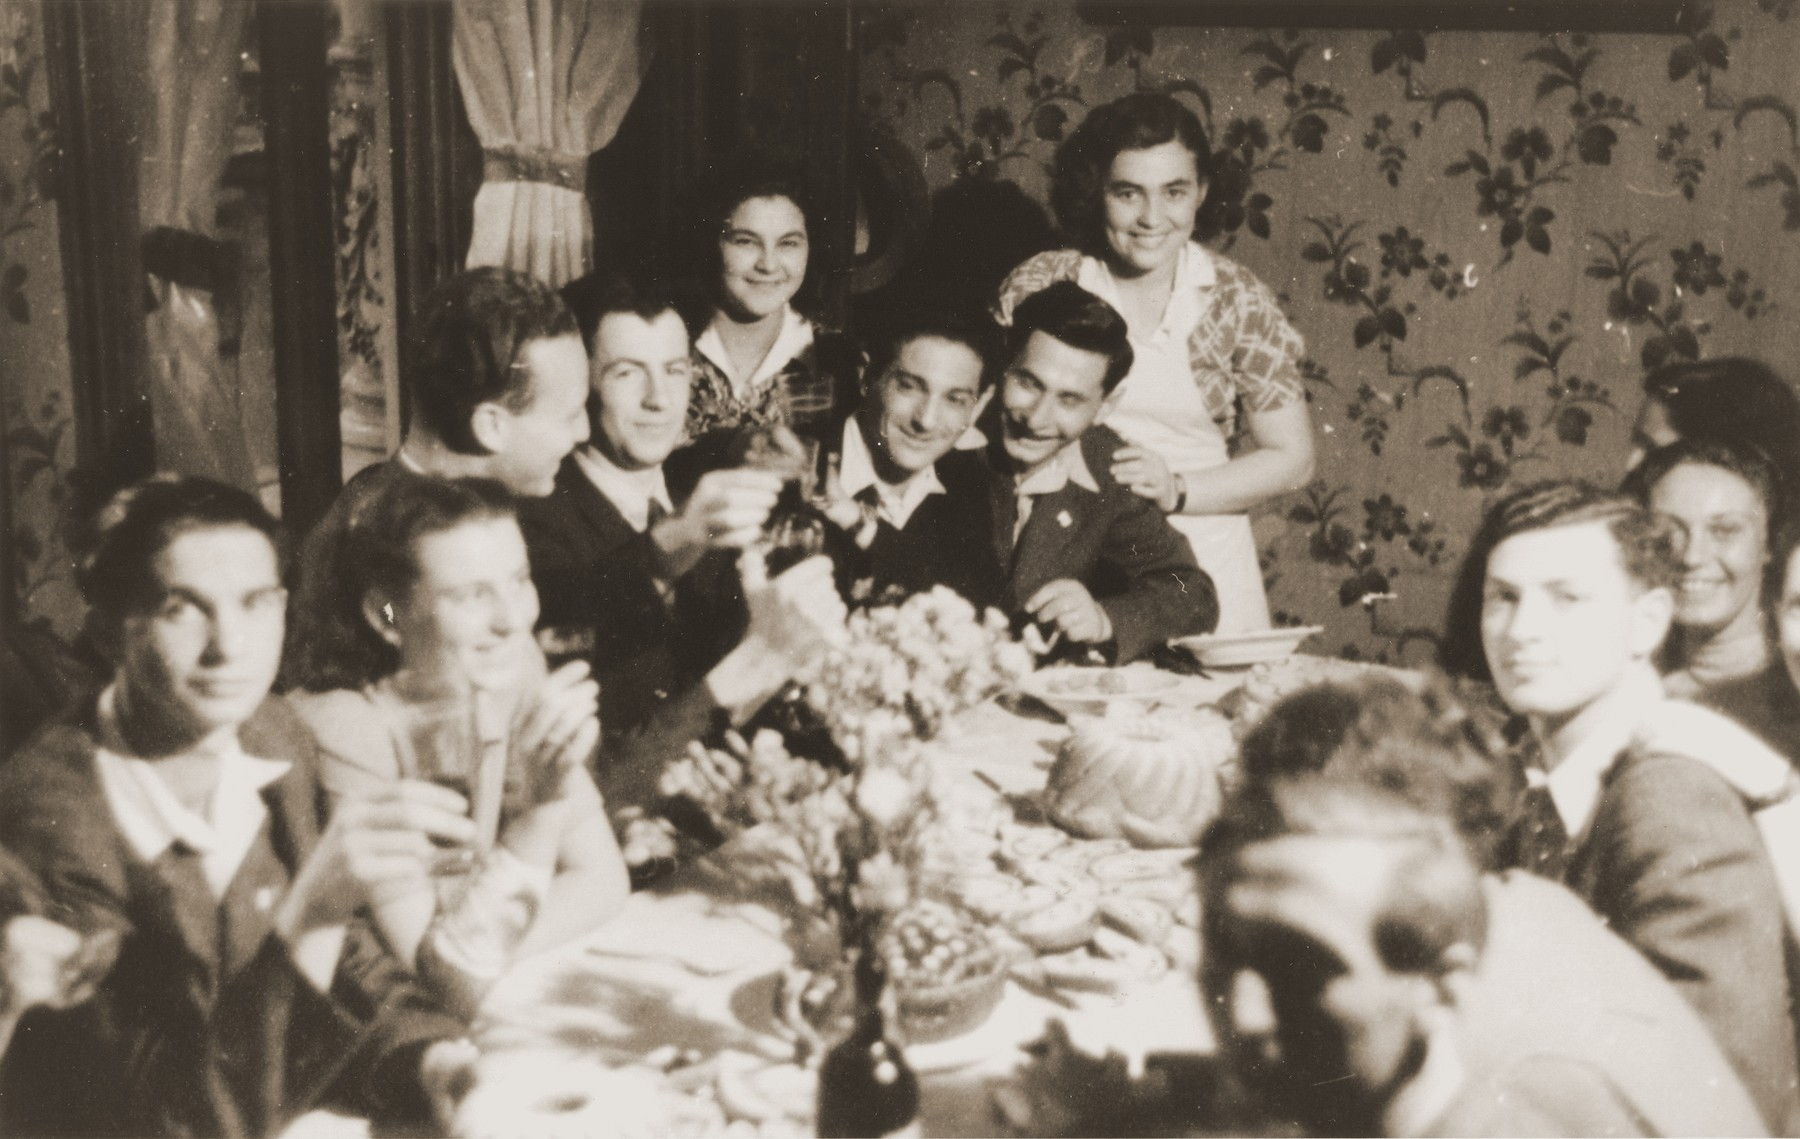 A party for Bricha workers held at Frankgasse 2, Vienna.  Among those pictured are Juzik Waiss, Sjziamer Hertzberg, Bronislav, and George Birman.